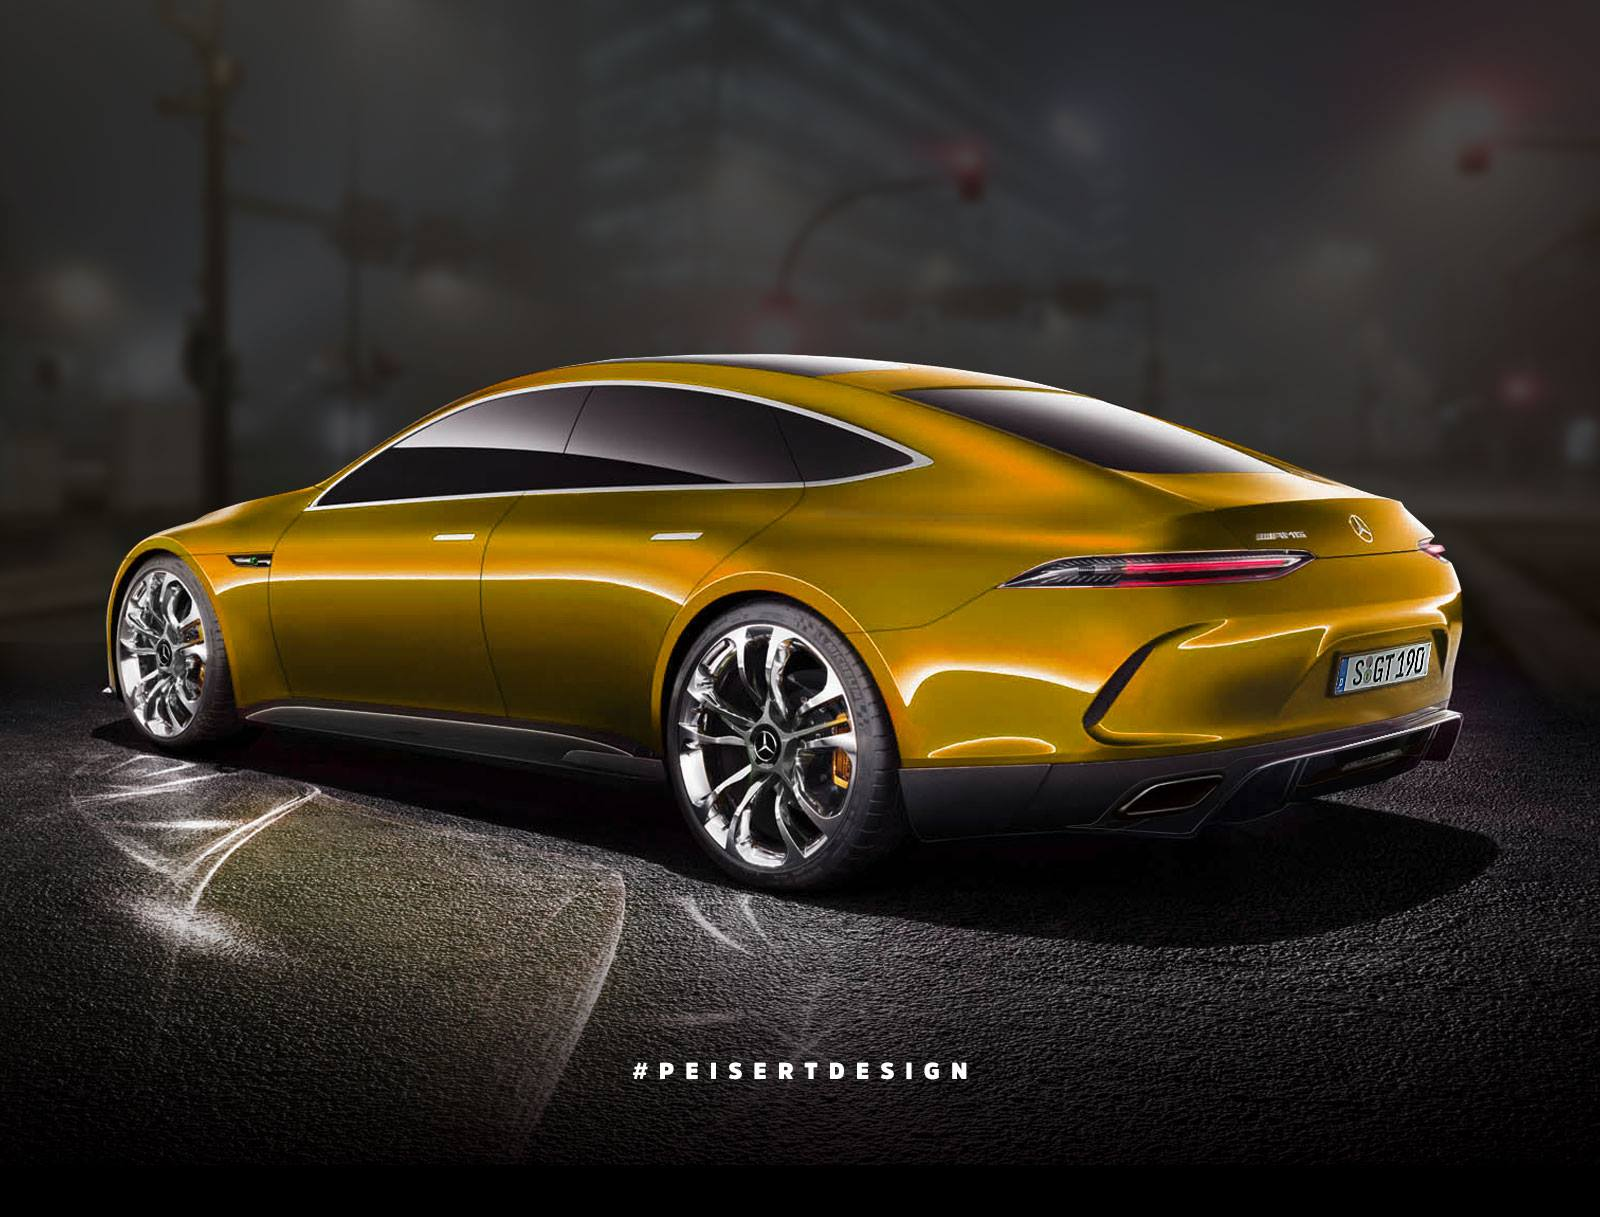 Mercedes amg gt concept see how it looks in semi production guise mercedesblog